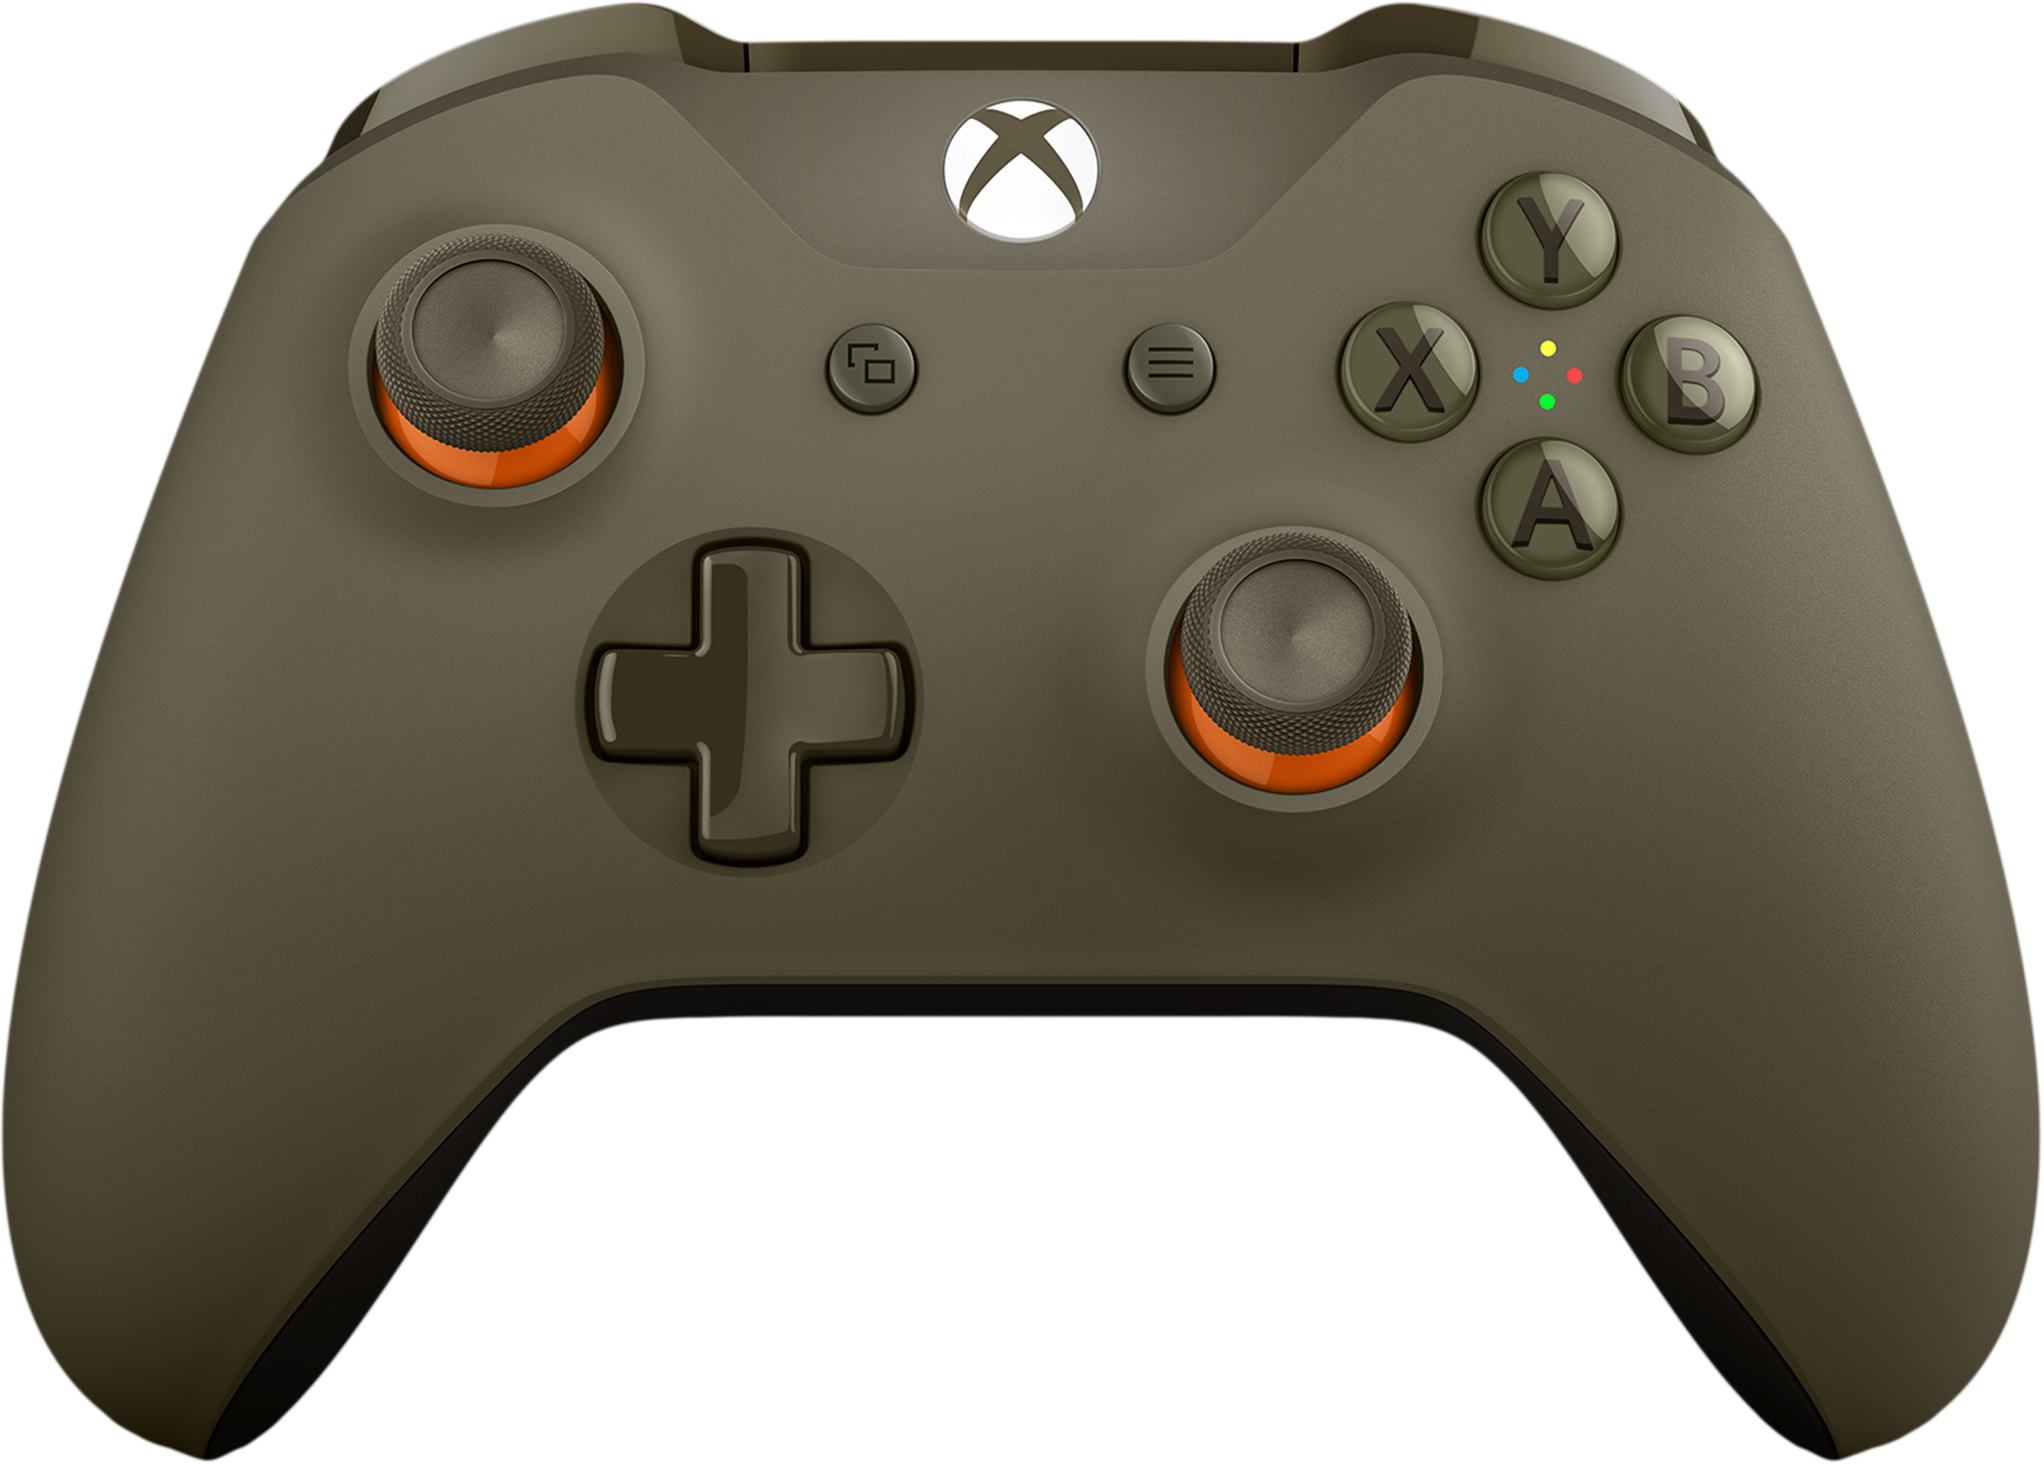 xbox-wireless-controller-green-orange